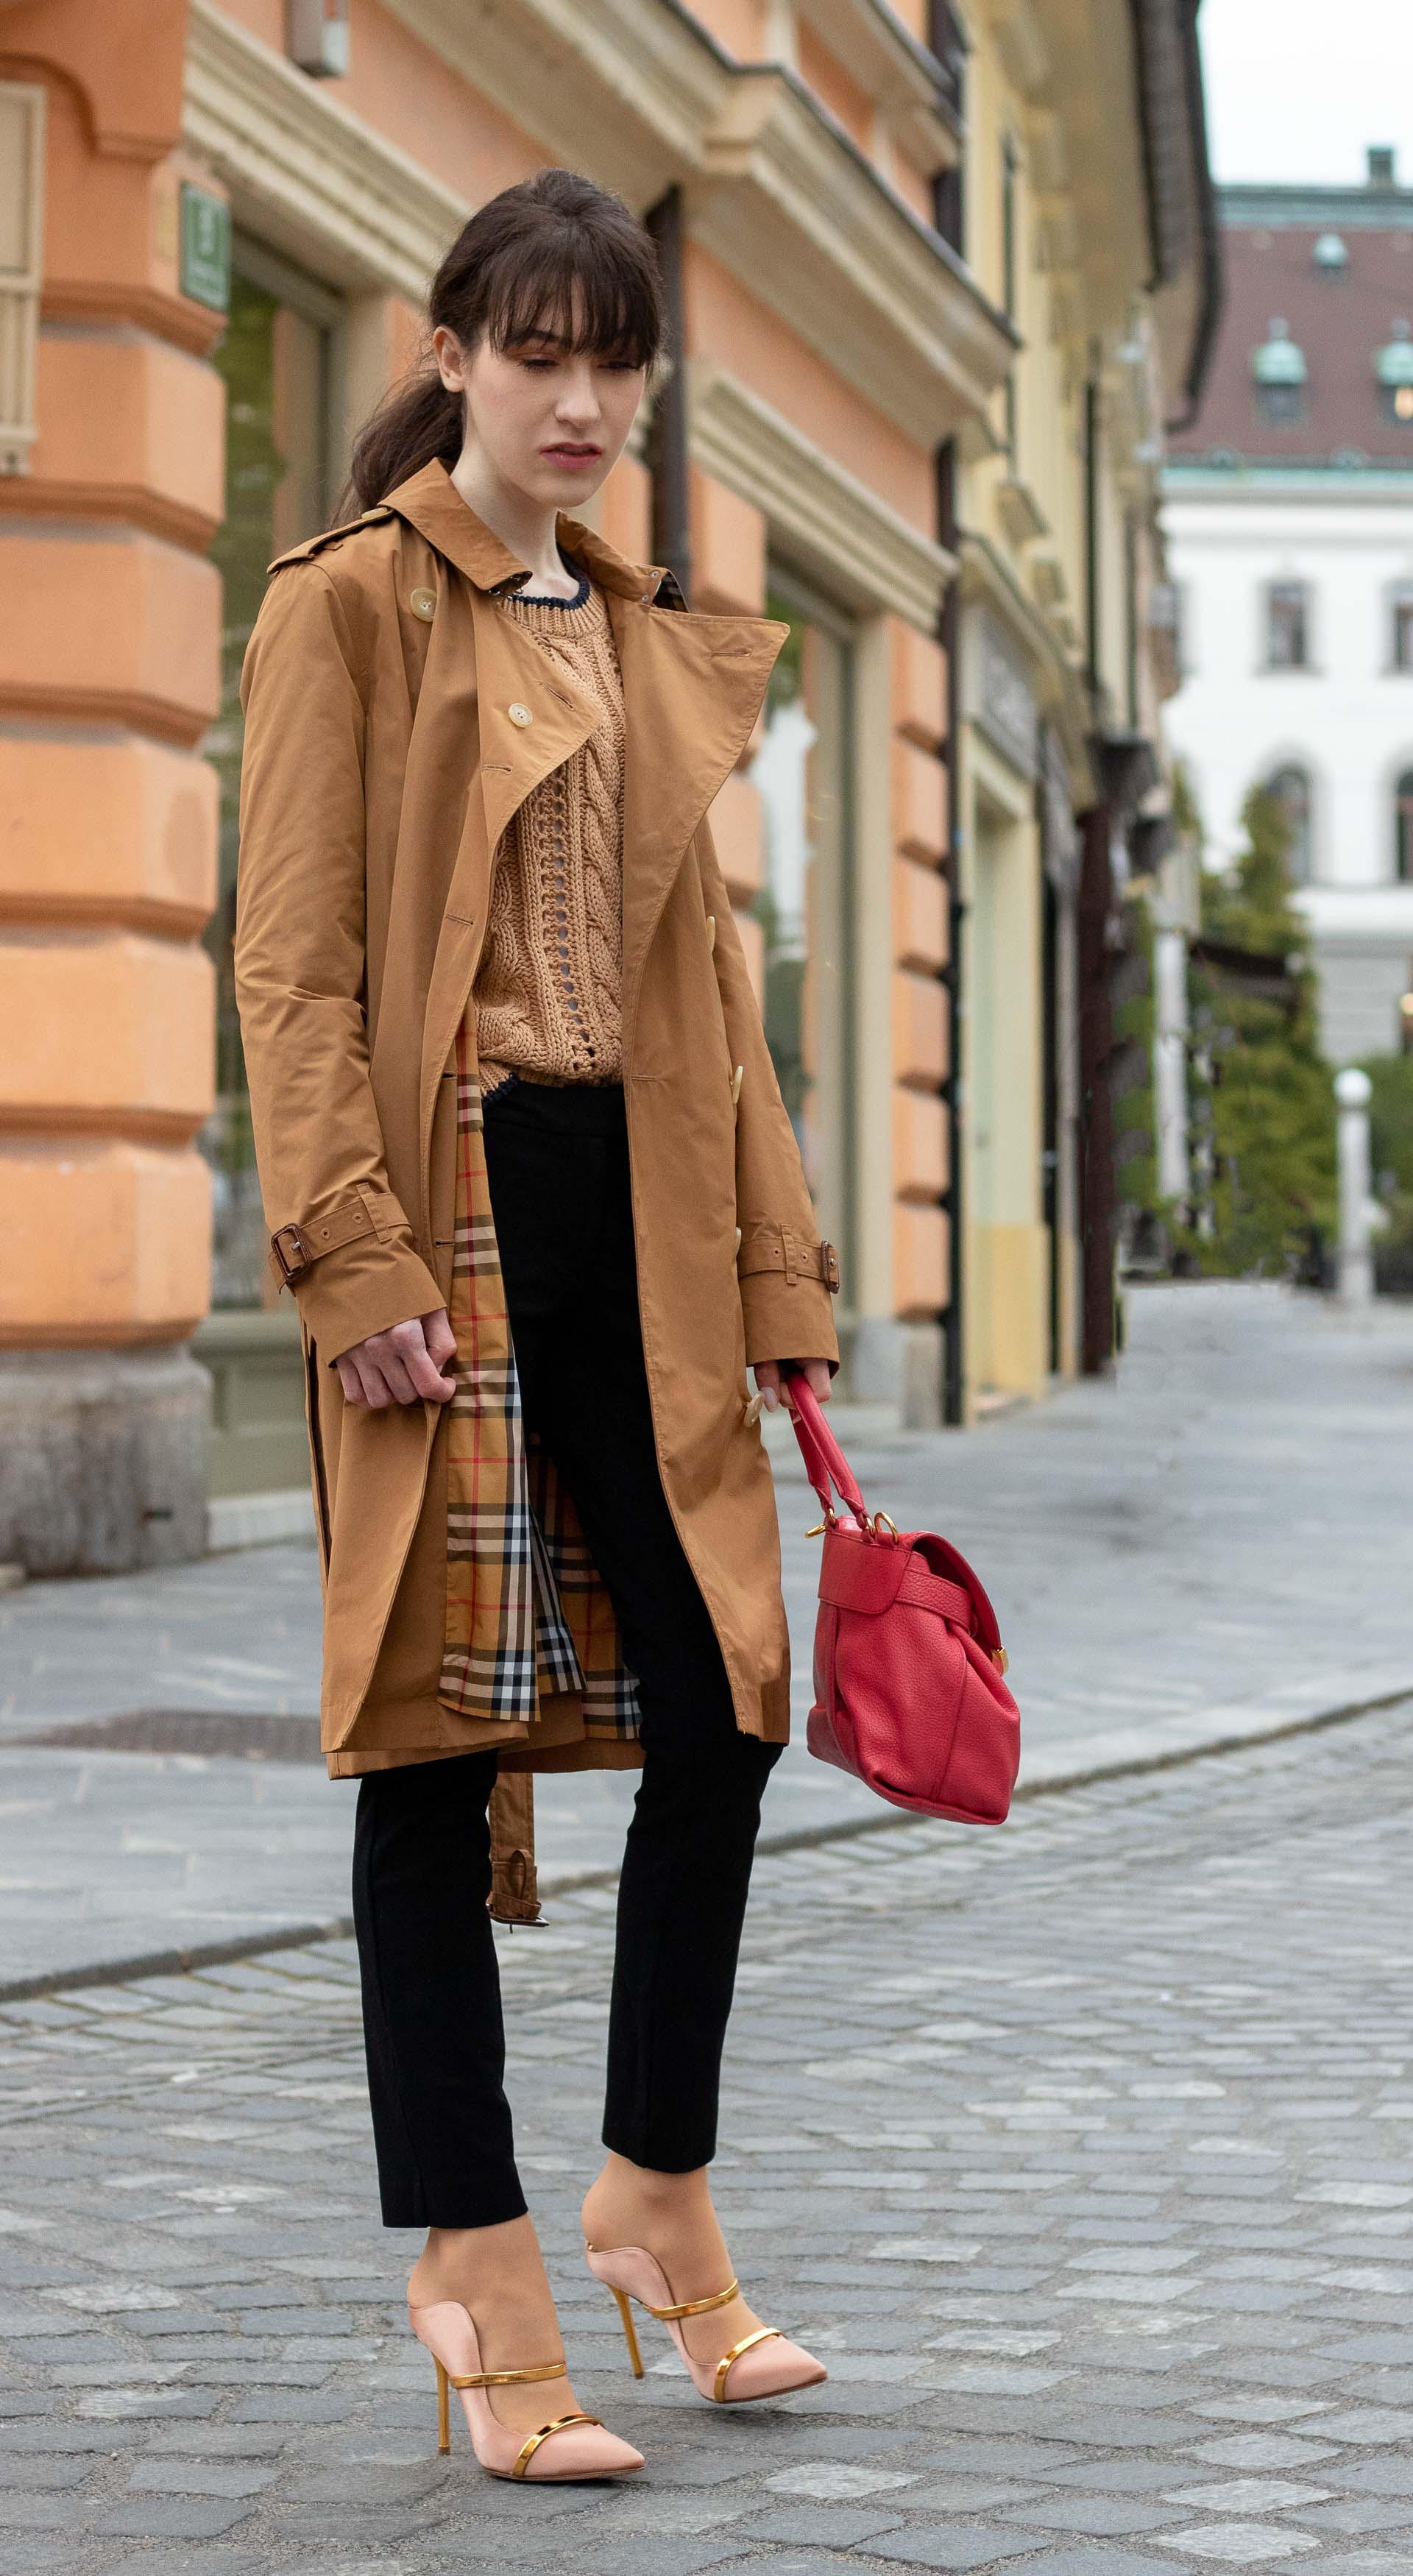 Must follow Slovenian Fashion Blogger Veronika Lipar of Brunette from Wall Street wearing camel Burberry trench coat Mango cable knit sweater black trousers blush Malone Souliers mules pink top handle bag low ponytail bangs going to work